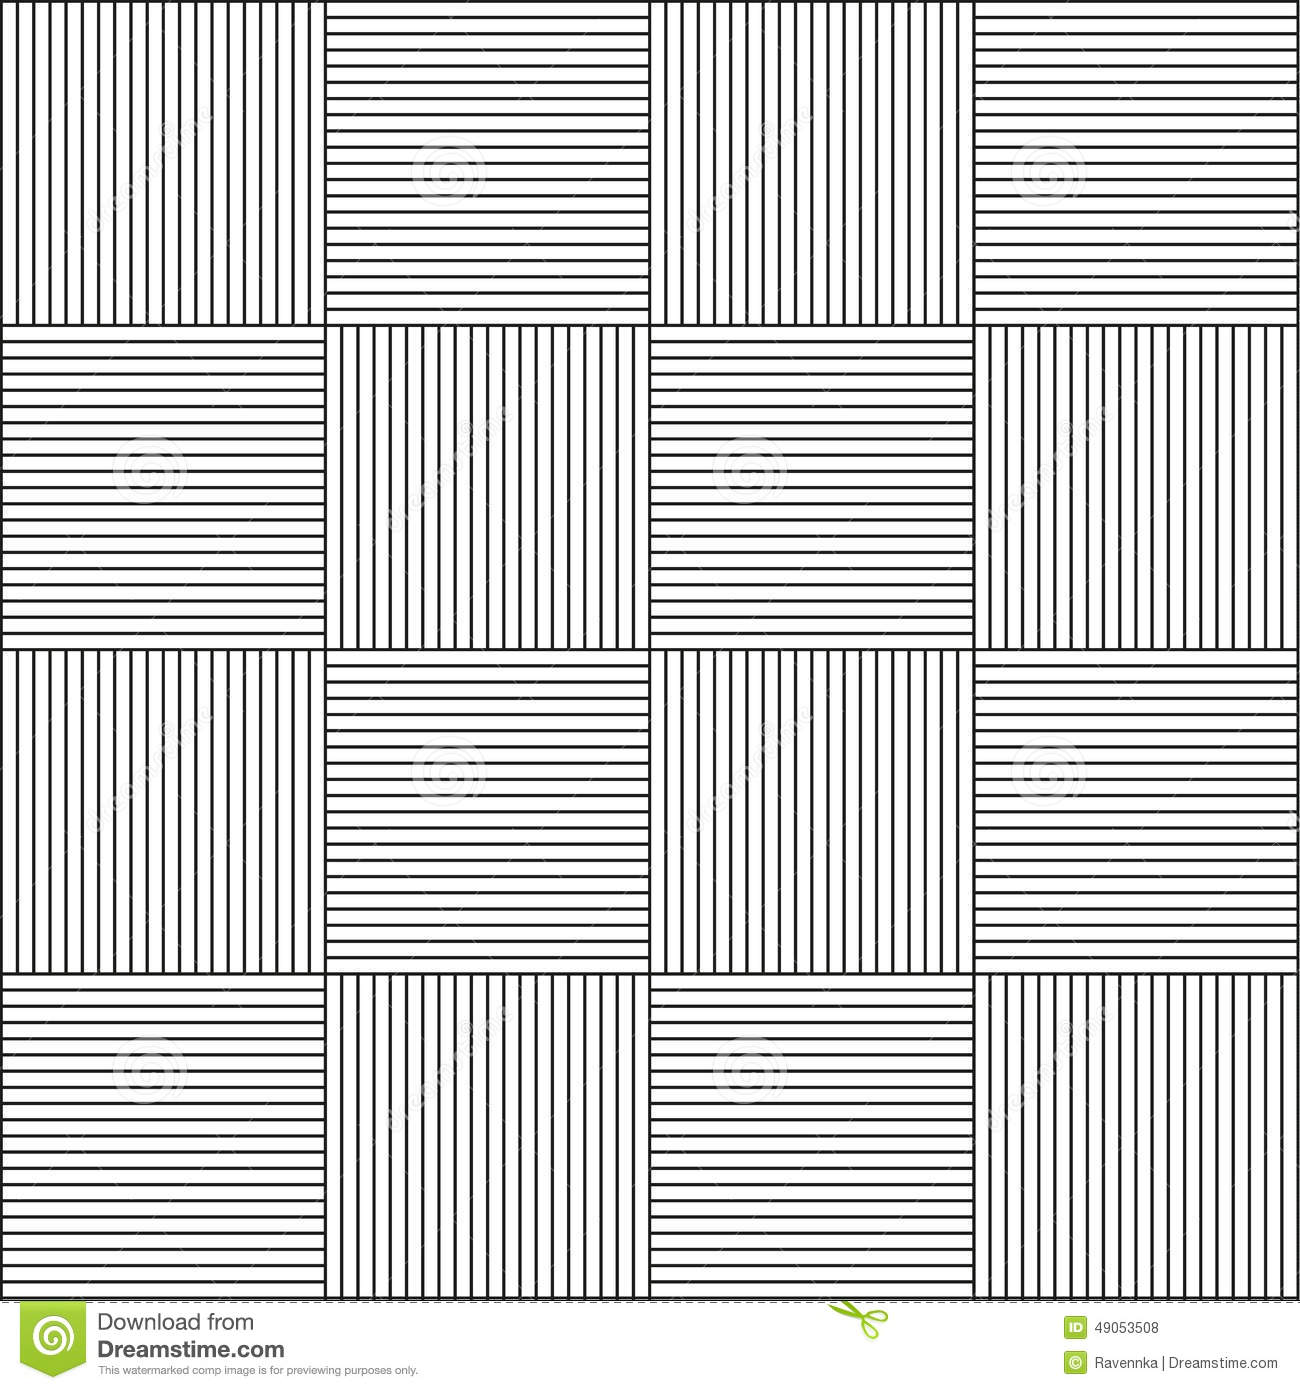 Worksheets Horizontal Line And Vertical Line seamless horizontal and vertical line pattern stock vector image pattern